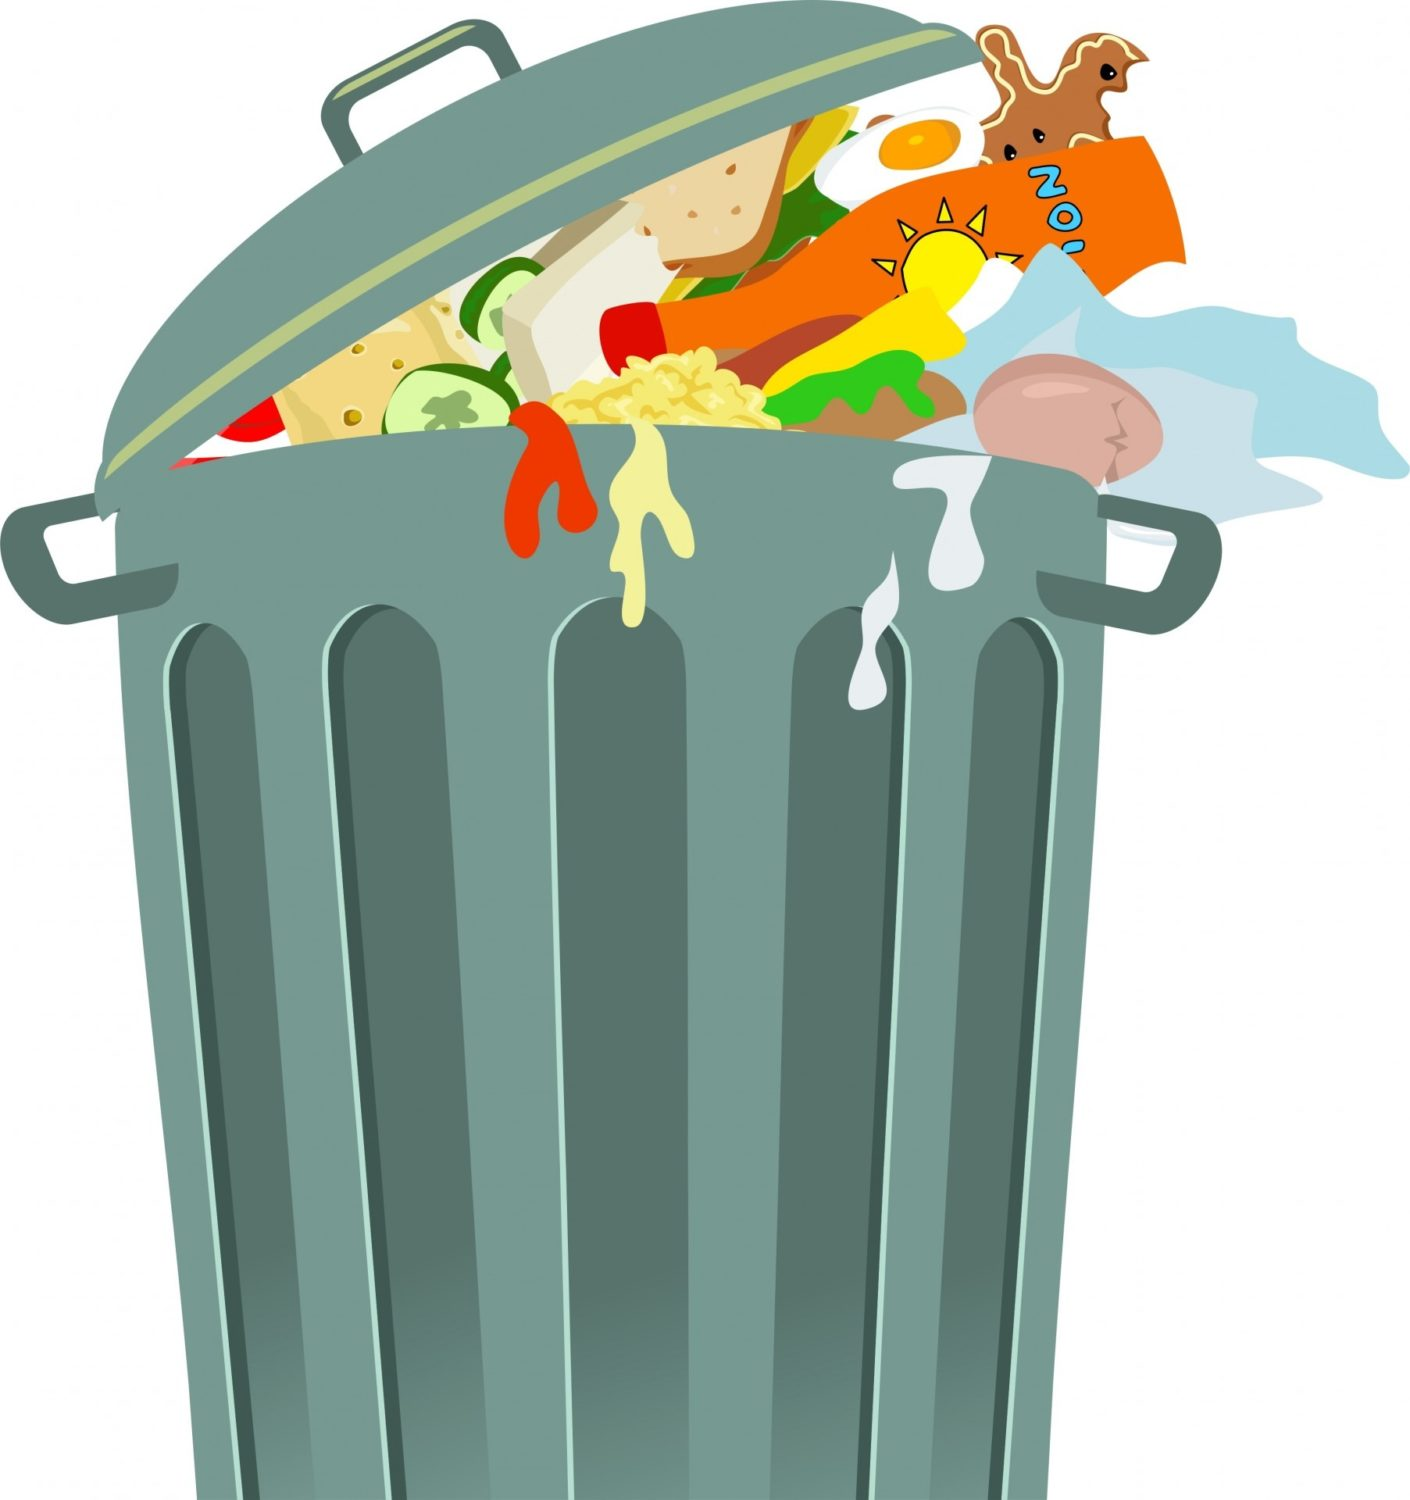 trash can clip art free stock photo public domain pictures within rh healthyjaime com garbage can clipart free trash can clipart png